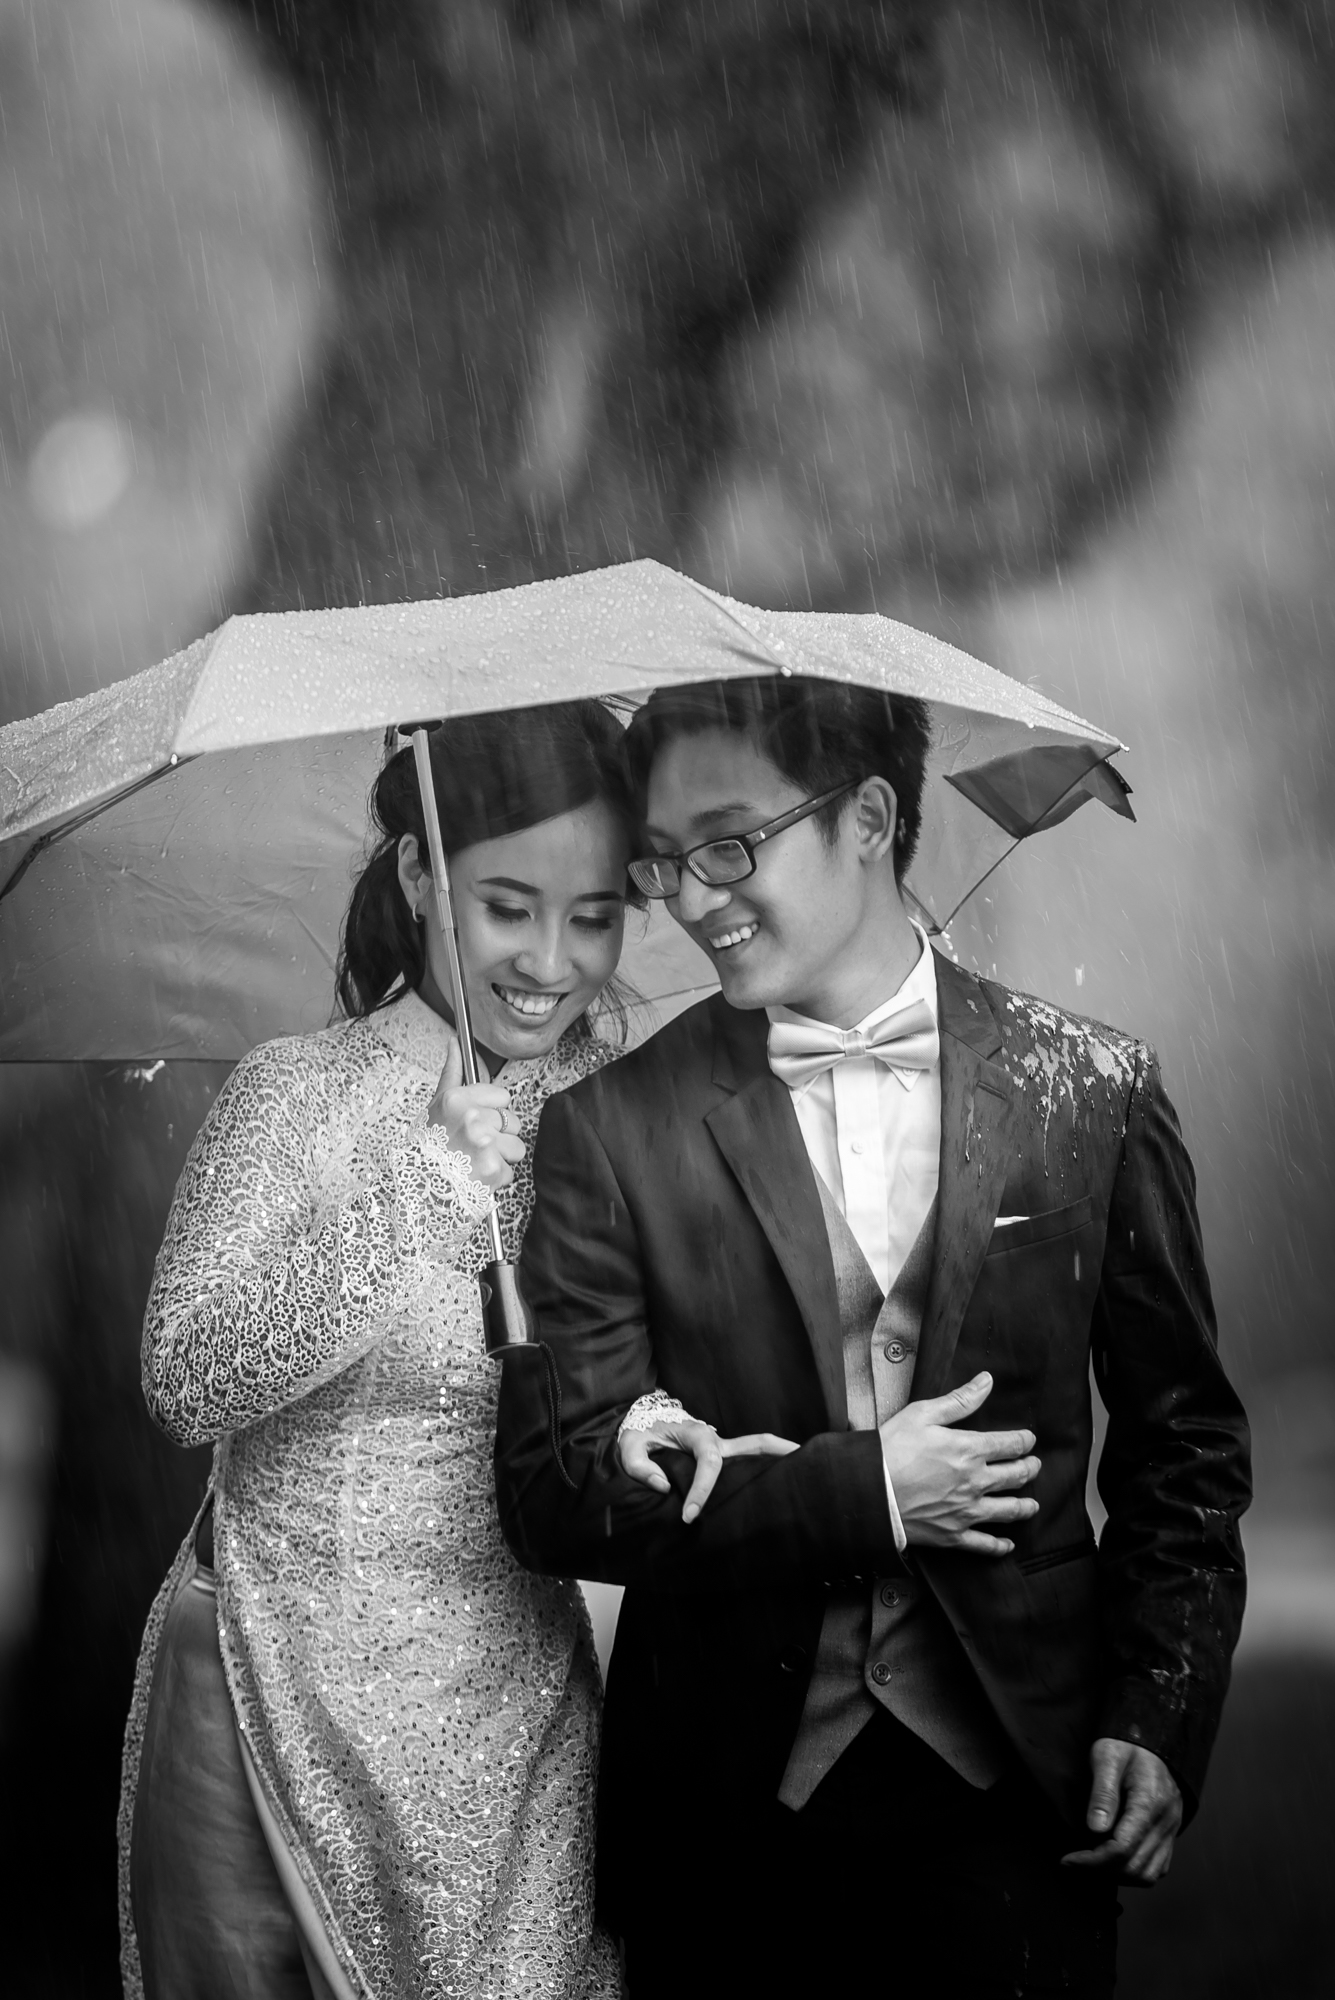 - The shoot ended with us running for cover from the rain.  As I put my gear down, I noticed an incredible moment when the couple was leisurely walking towards the shelter, all the while smiling.